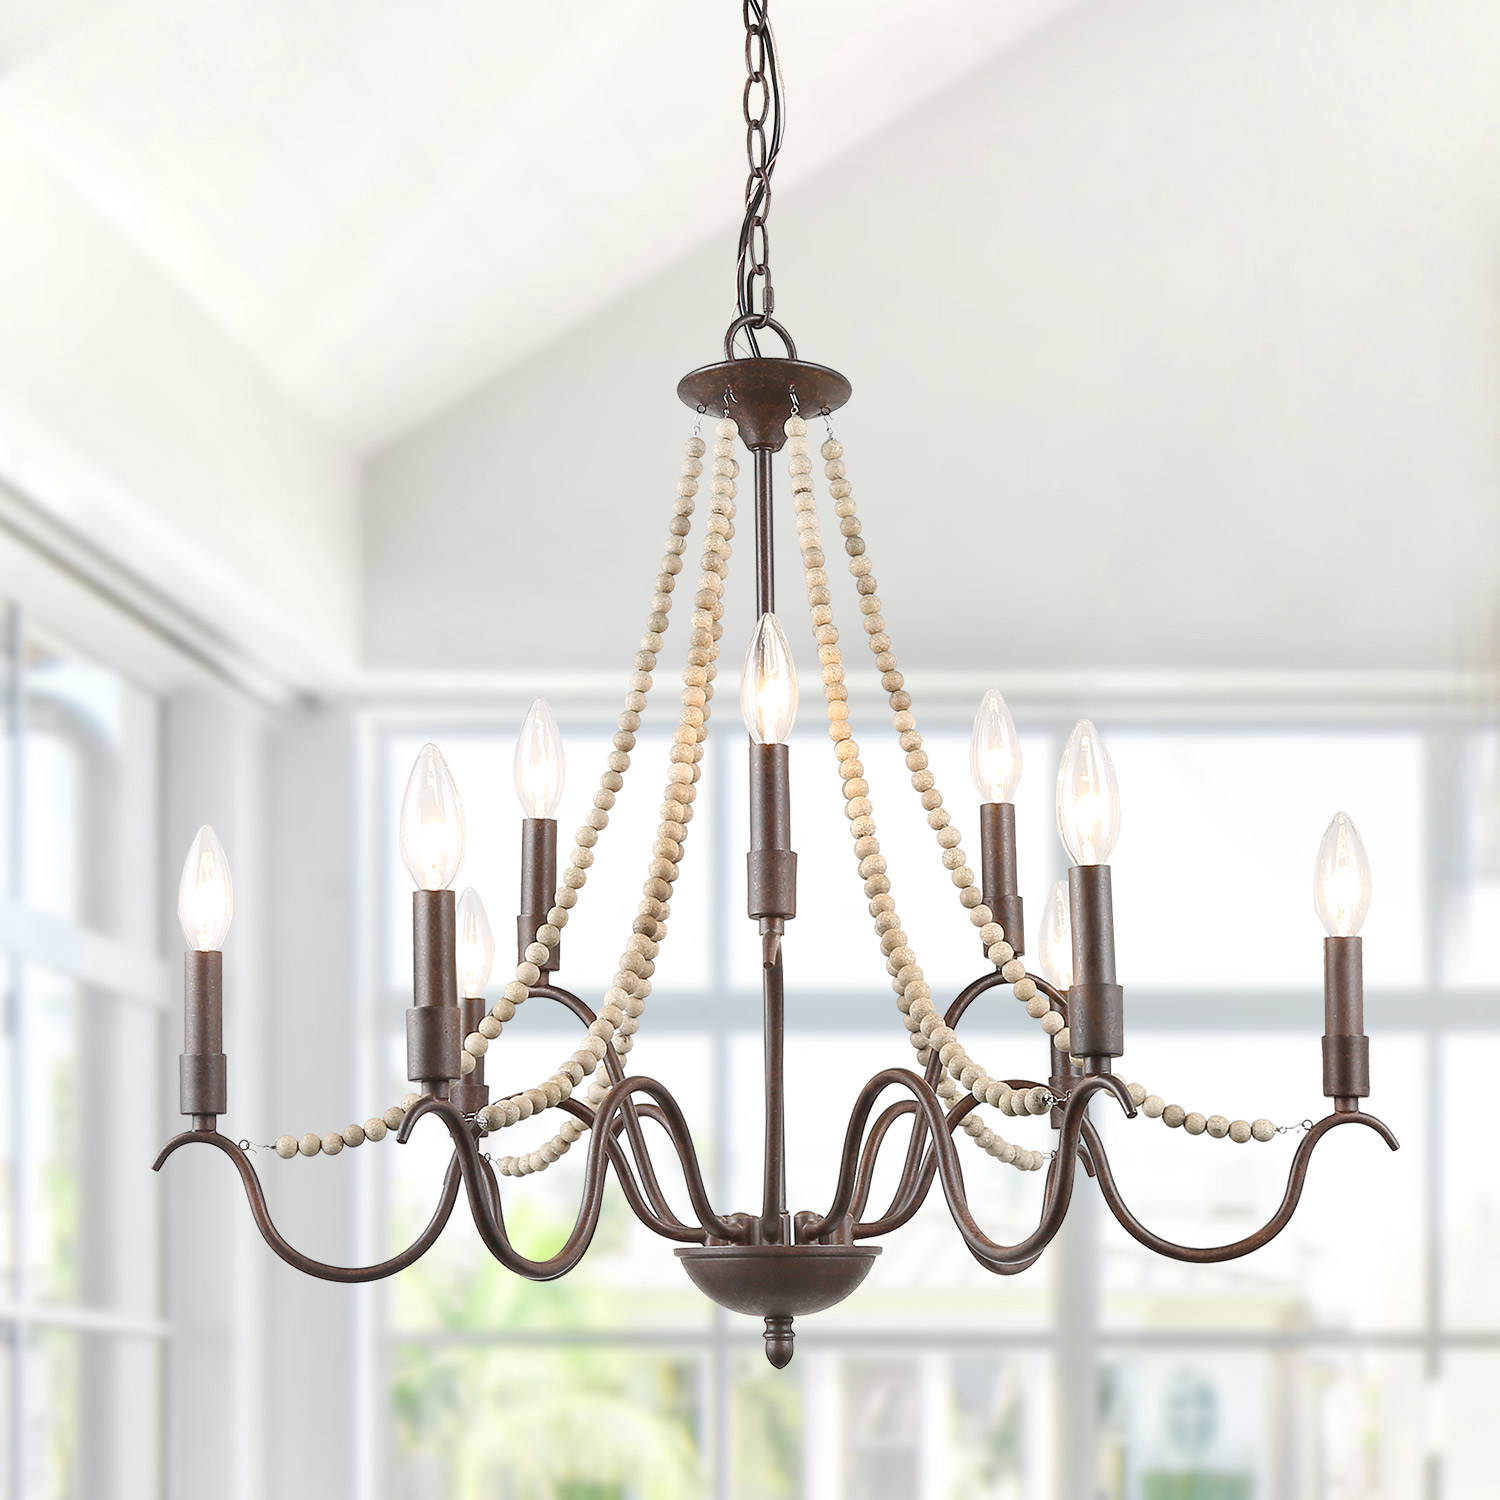 LNC French Country Chandeliers Industrial Lighting Fixtures Wood Beads  9 Light Chandeliers For Living Room/Dining Room/Bedroom